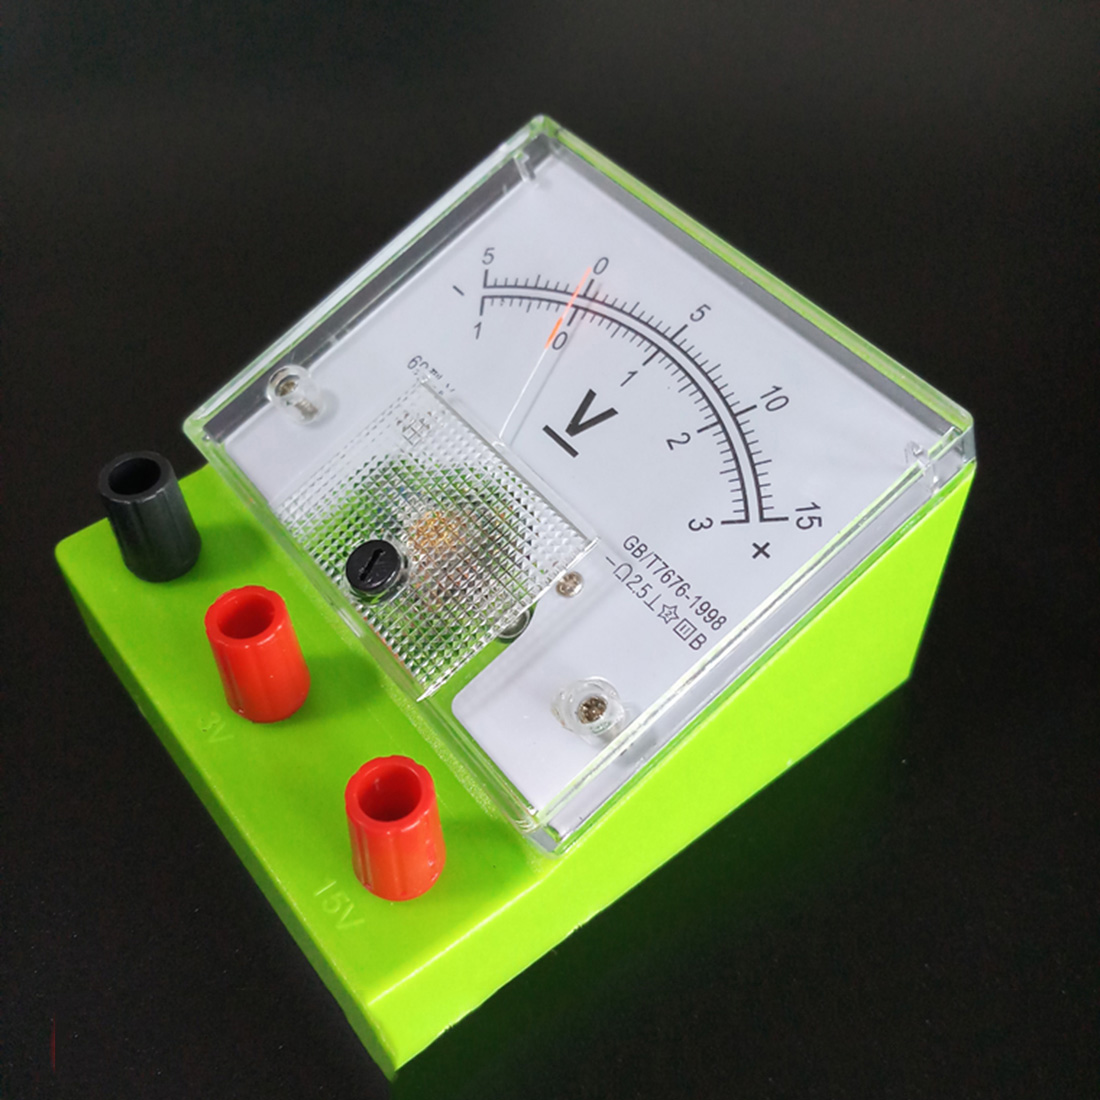 DIY Ammeter Voltmeter Volt Meter Physical Electrical Circuit Experiment Equipment For School